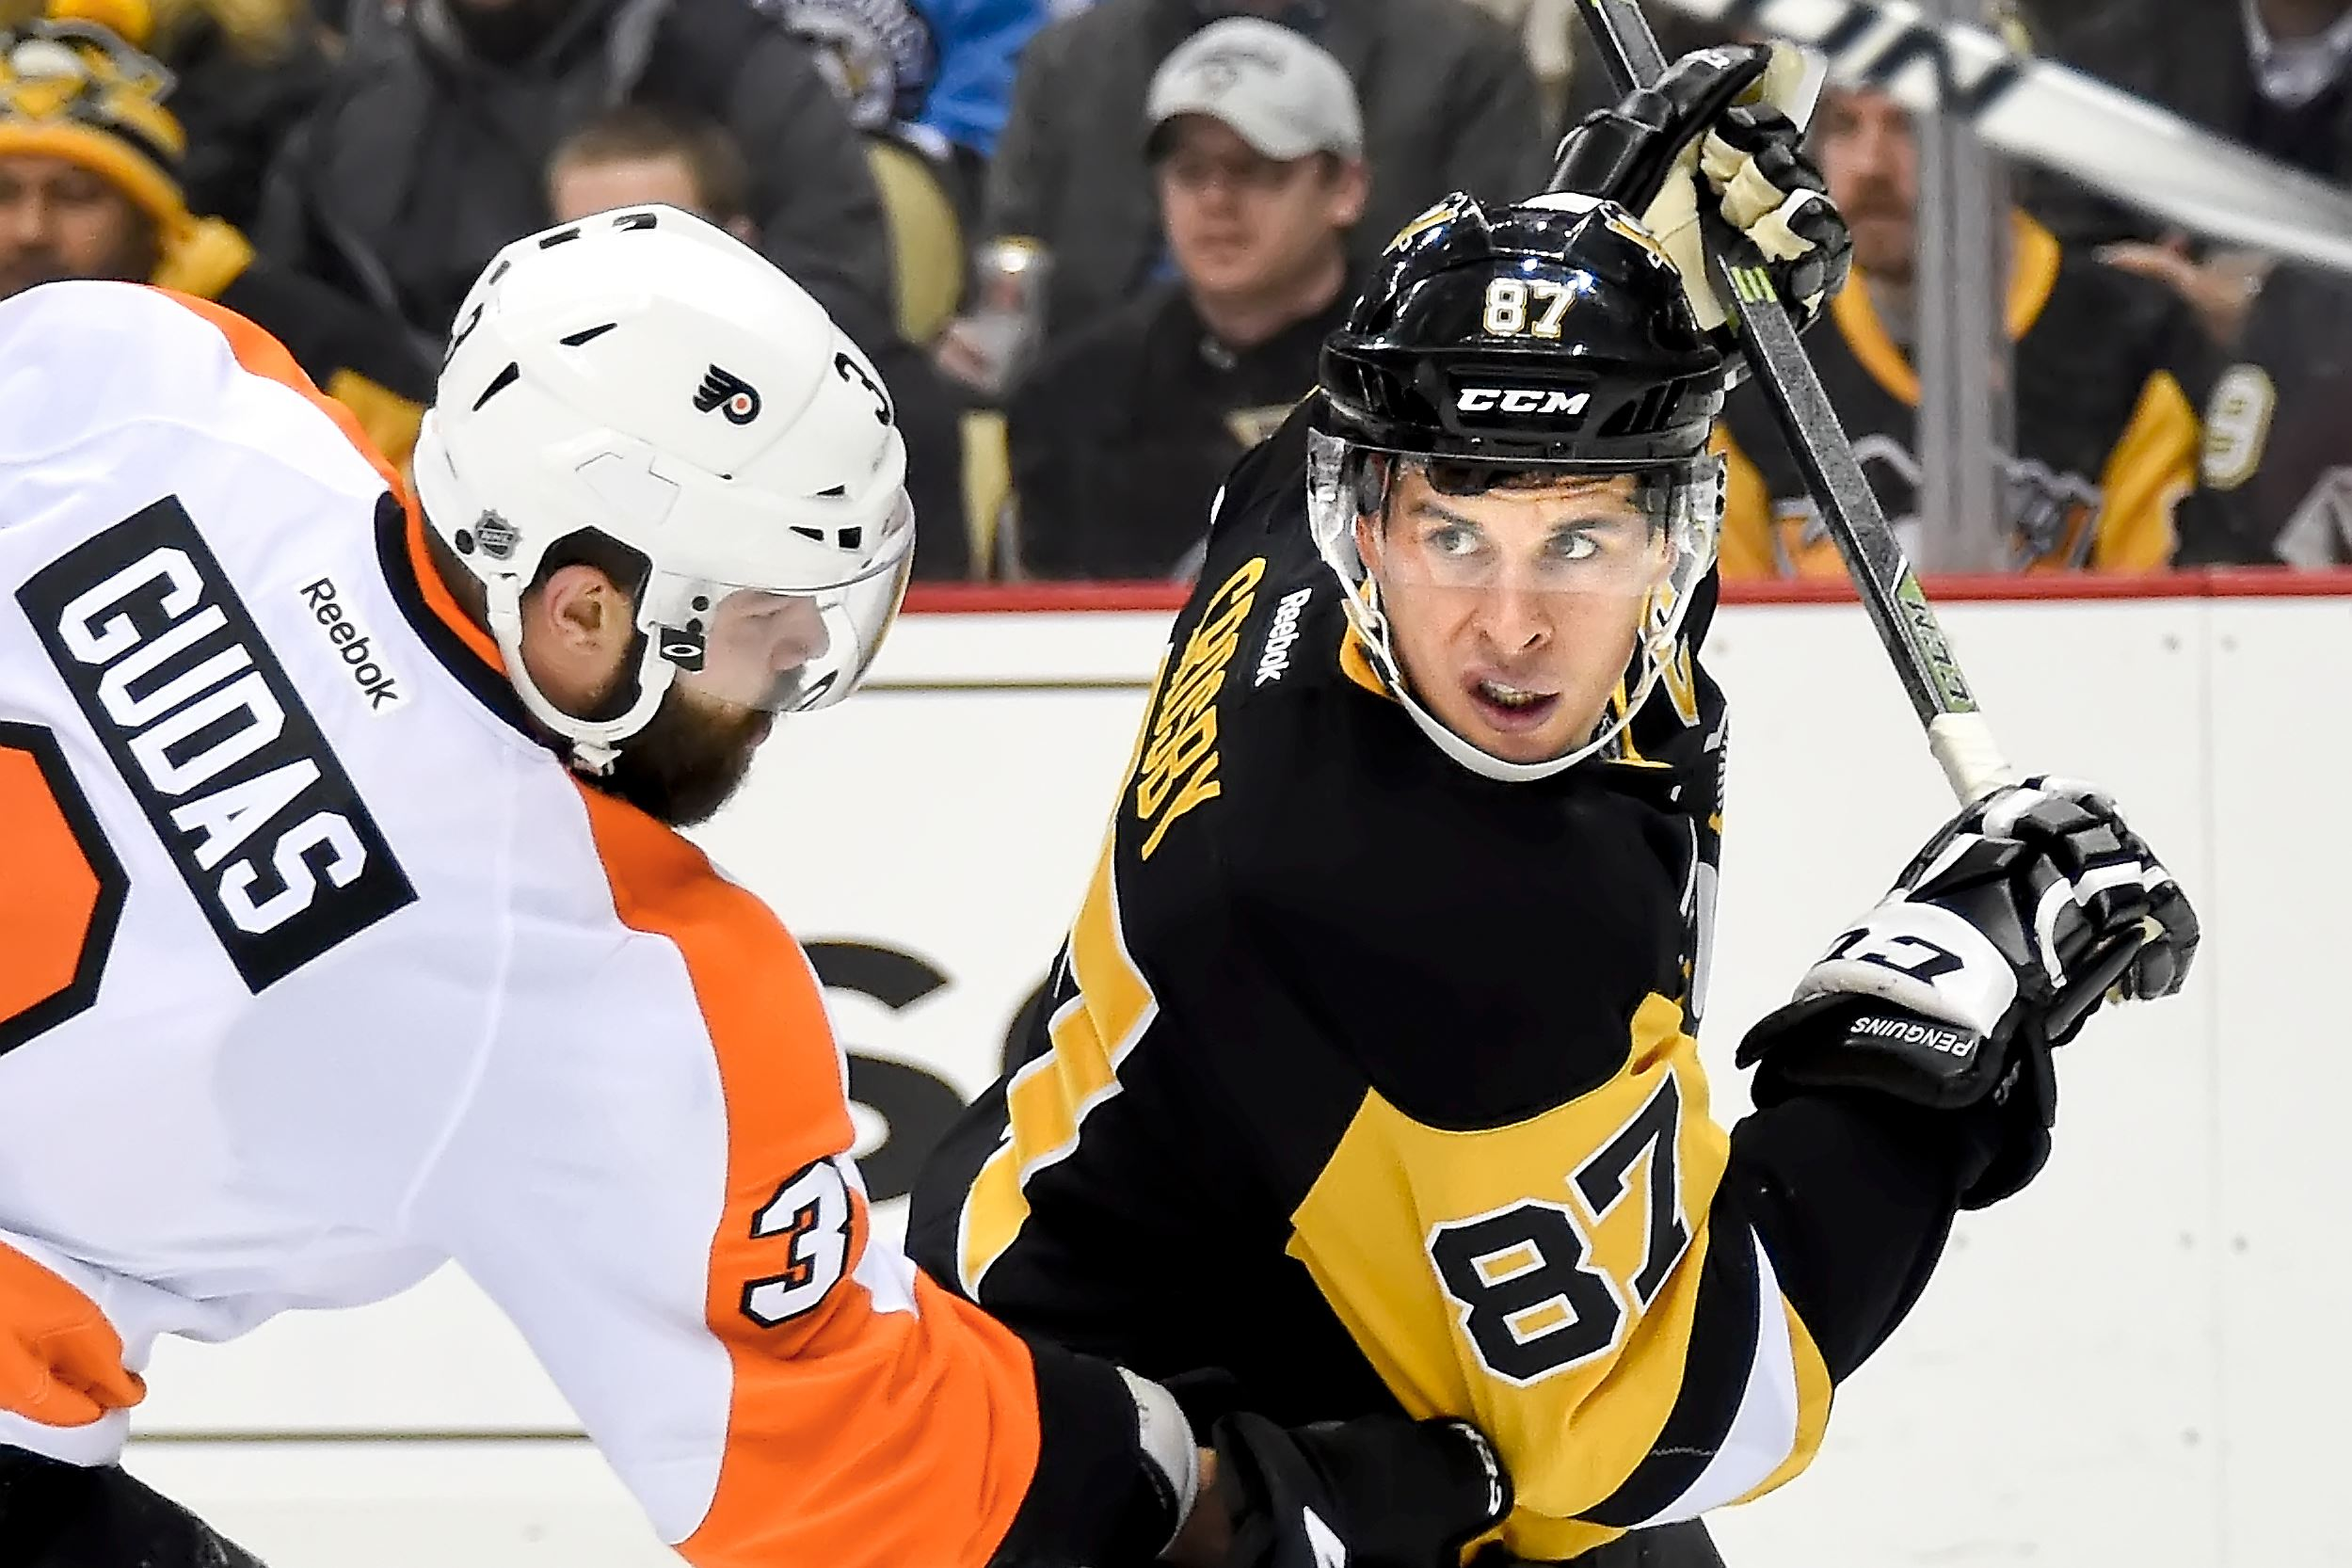 Rest is nice, but Crosby, Fleury wouldn't mind being in Nashville